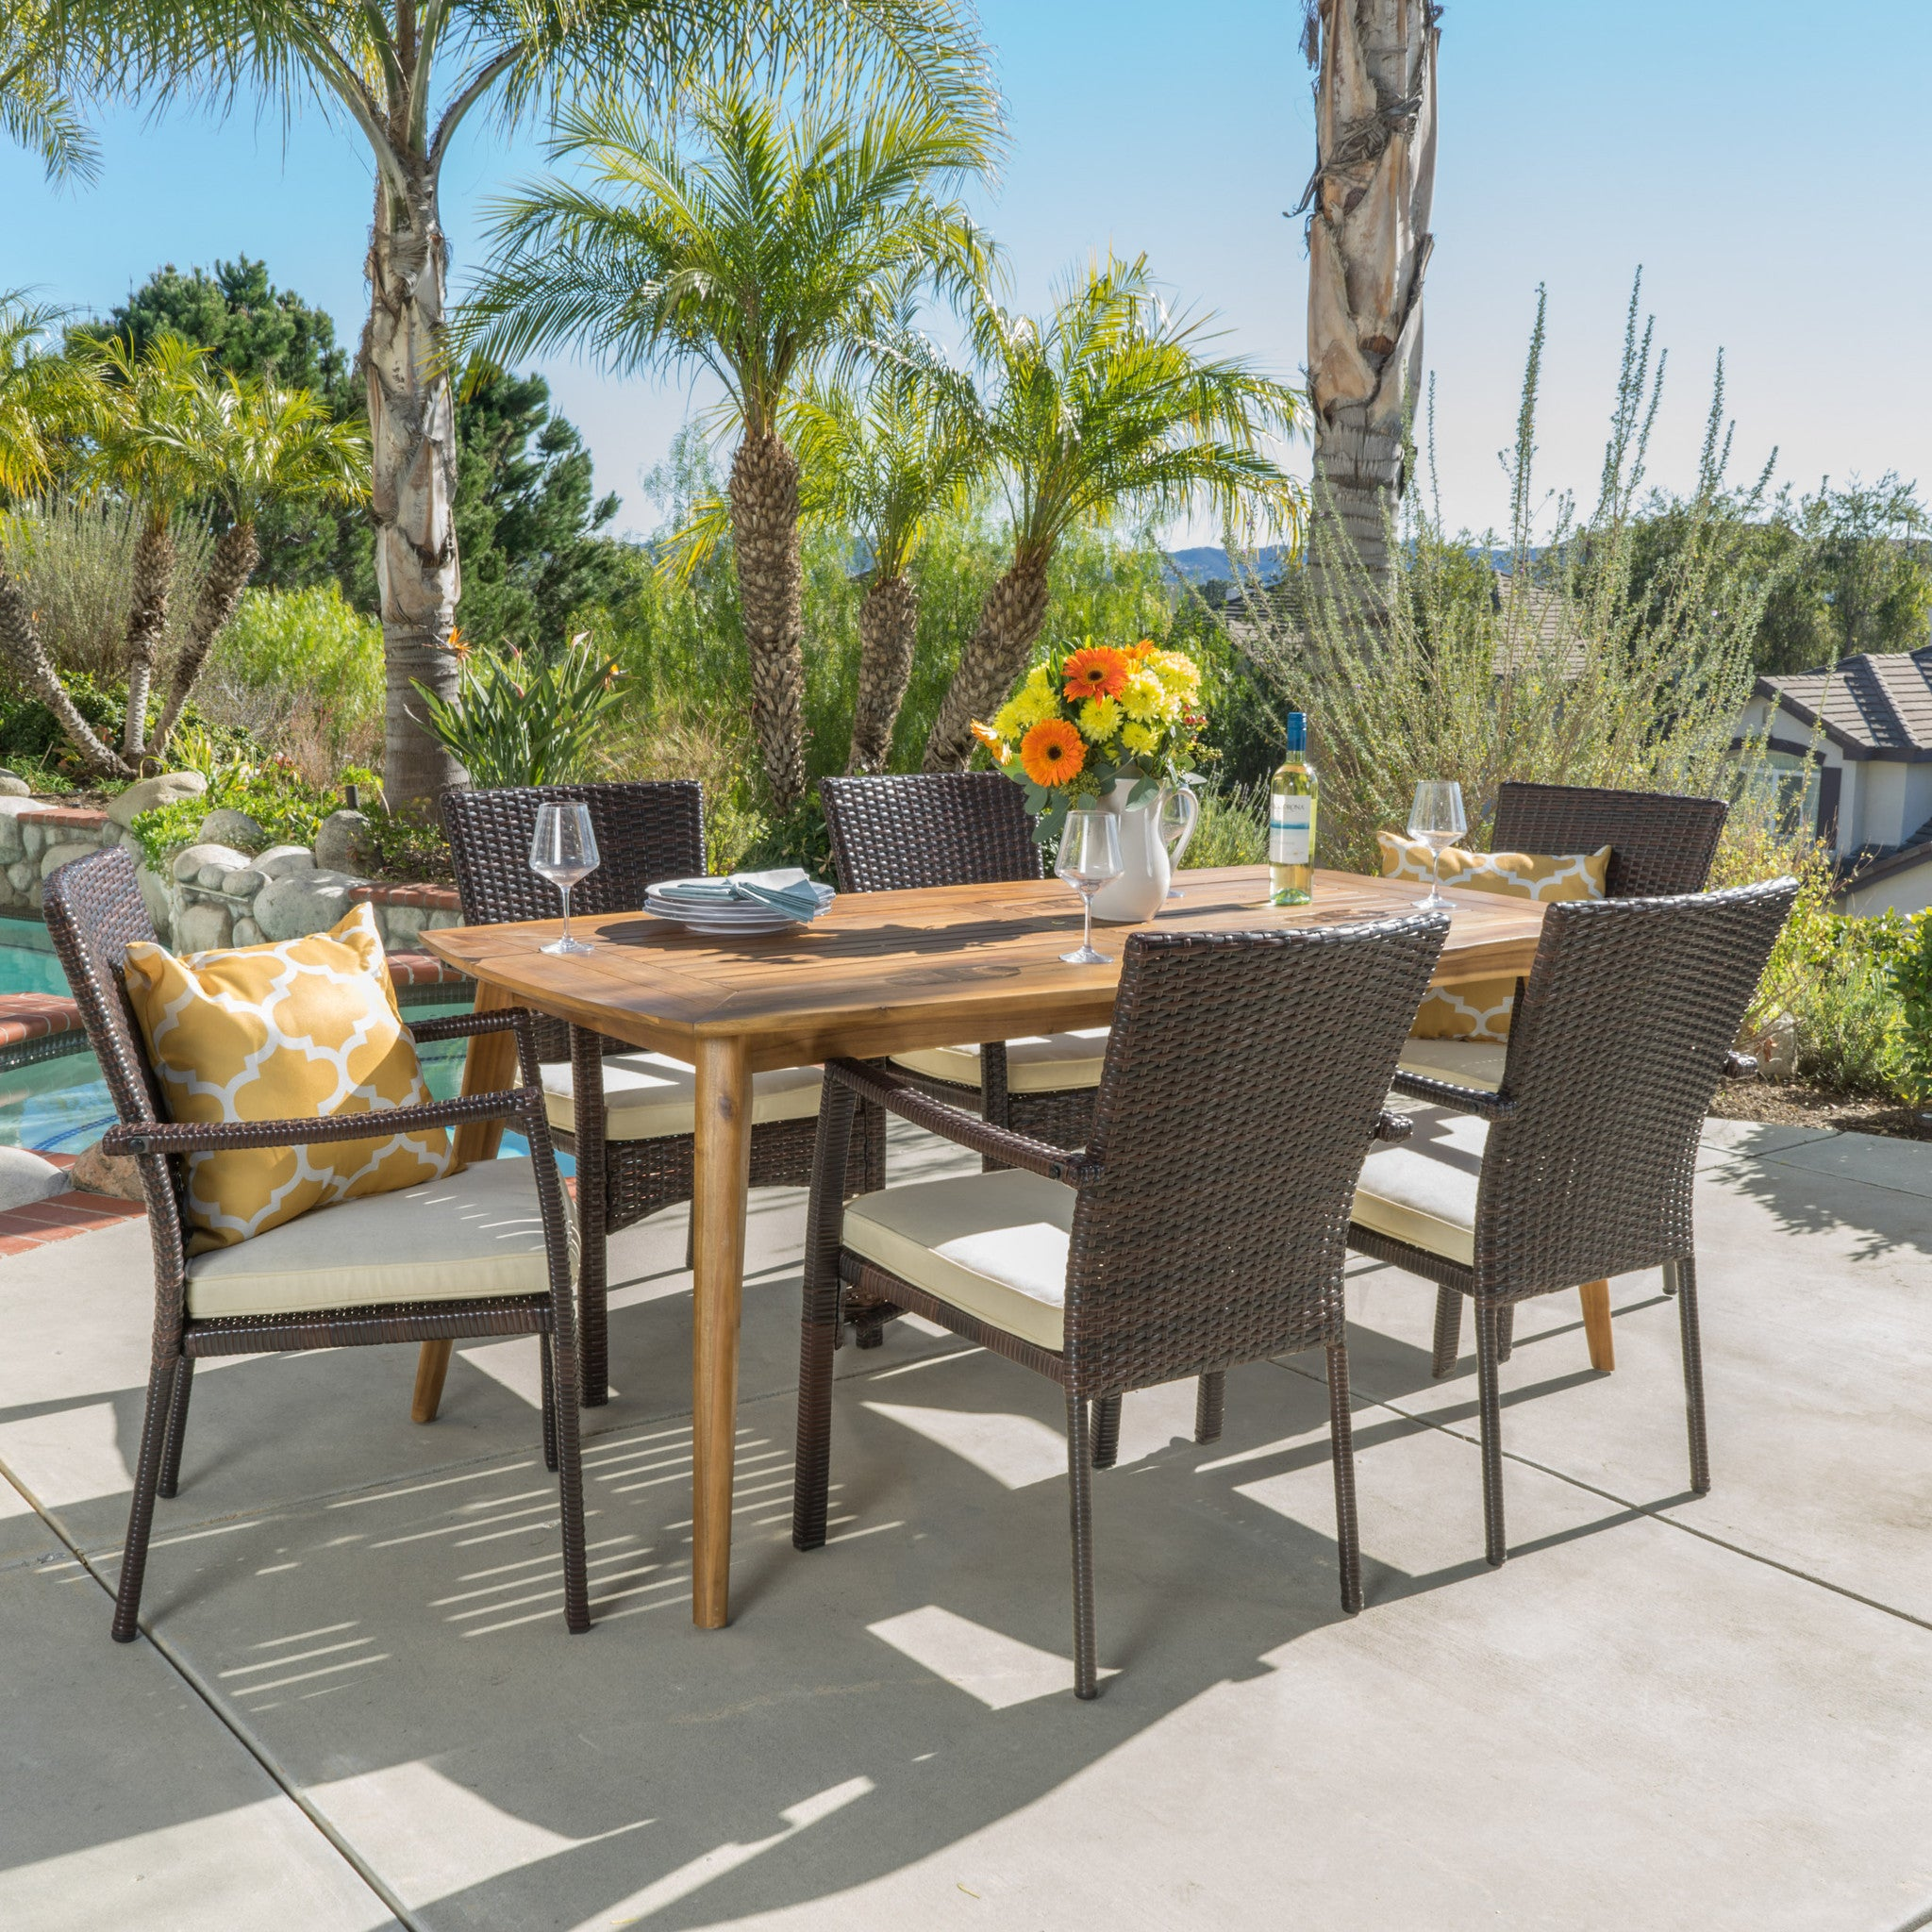 Pisciotta Outdoor Dining Set Cushions foto